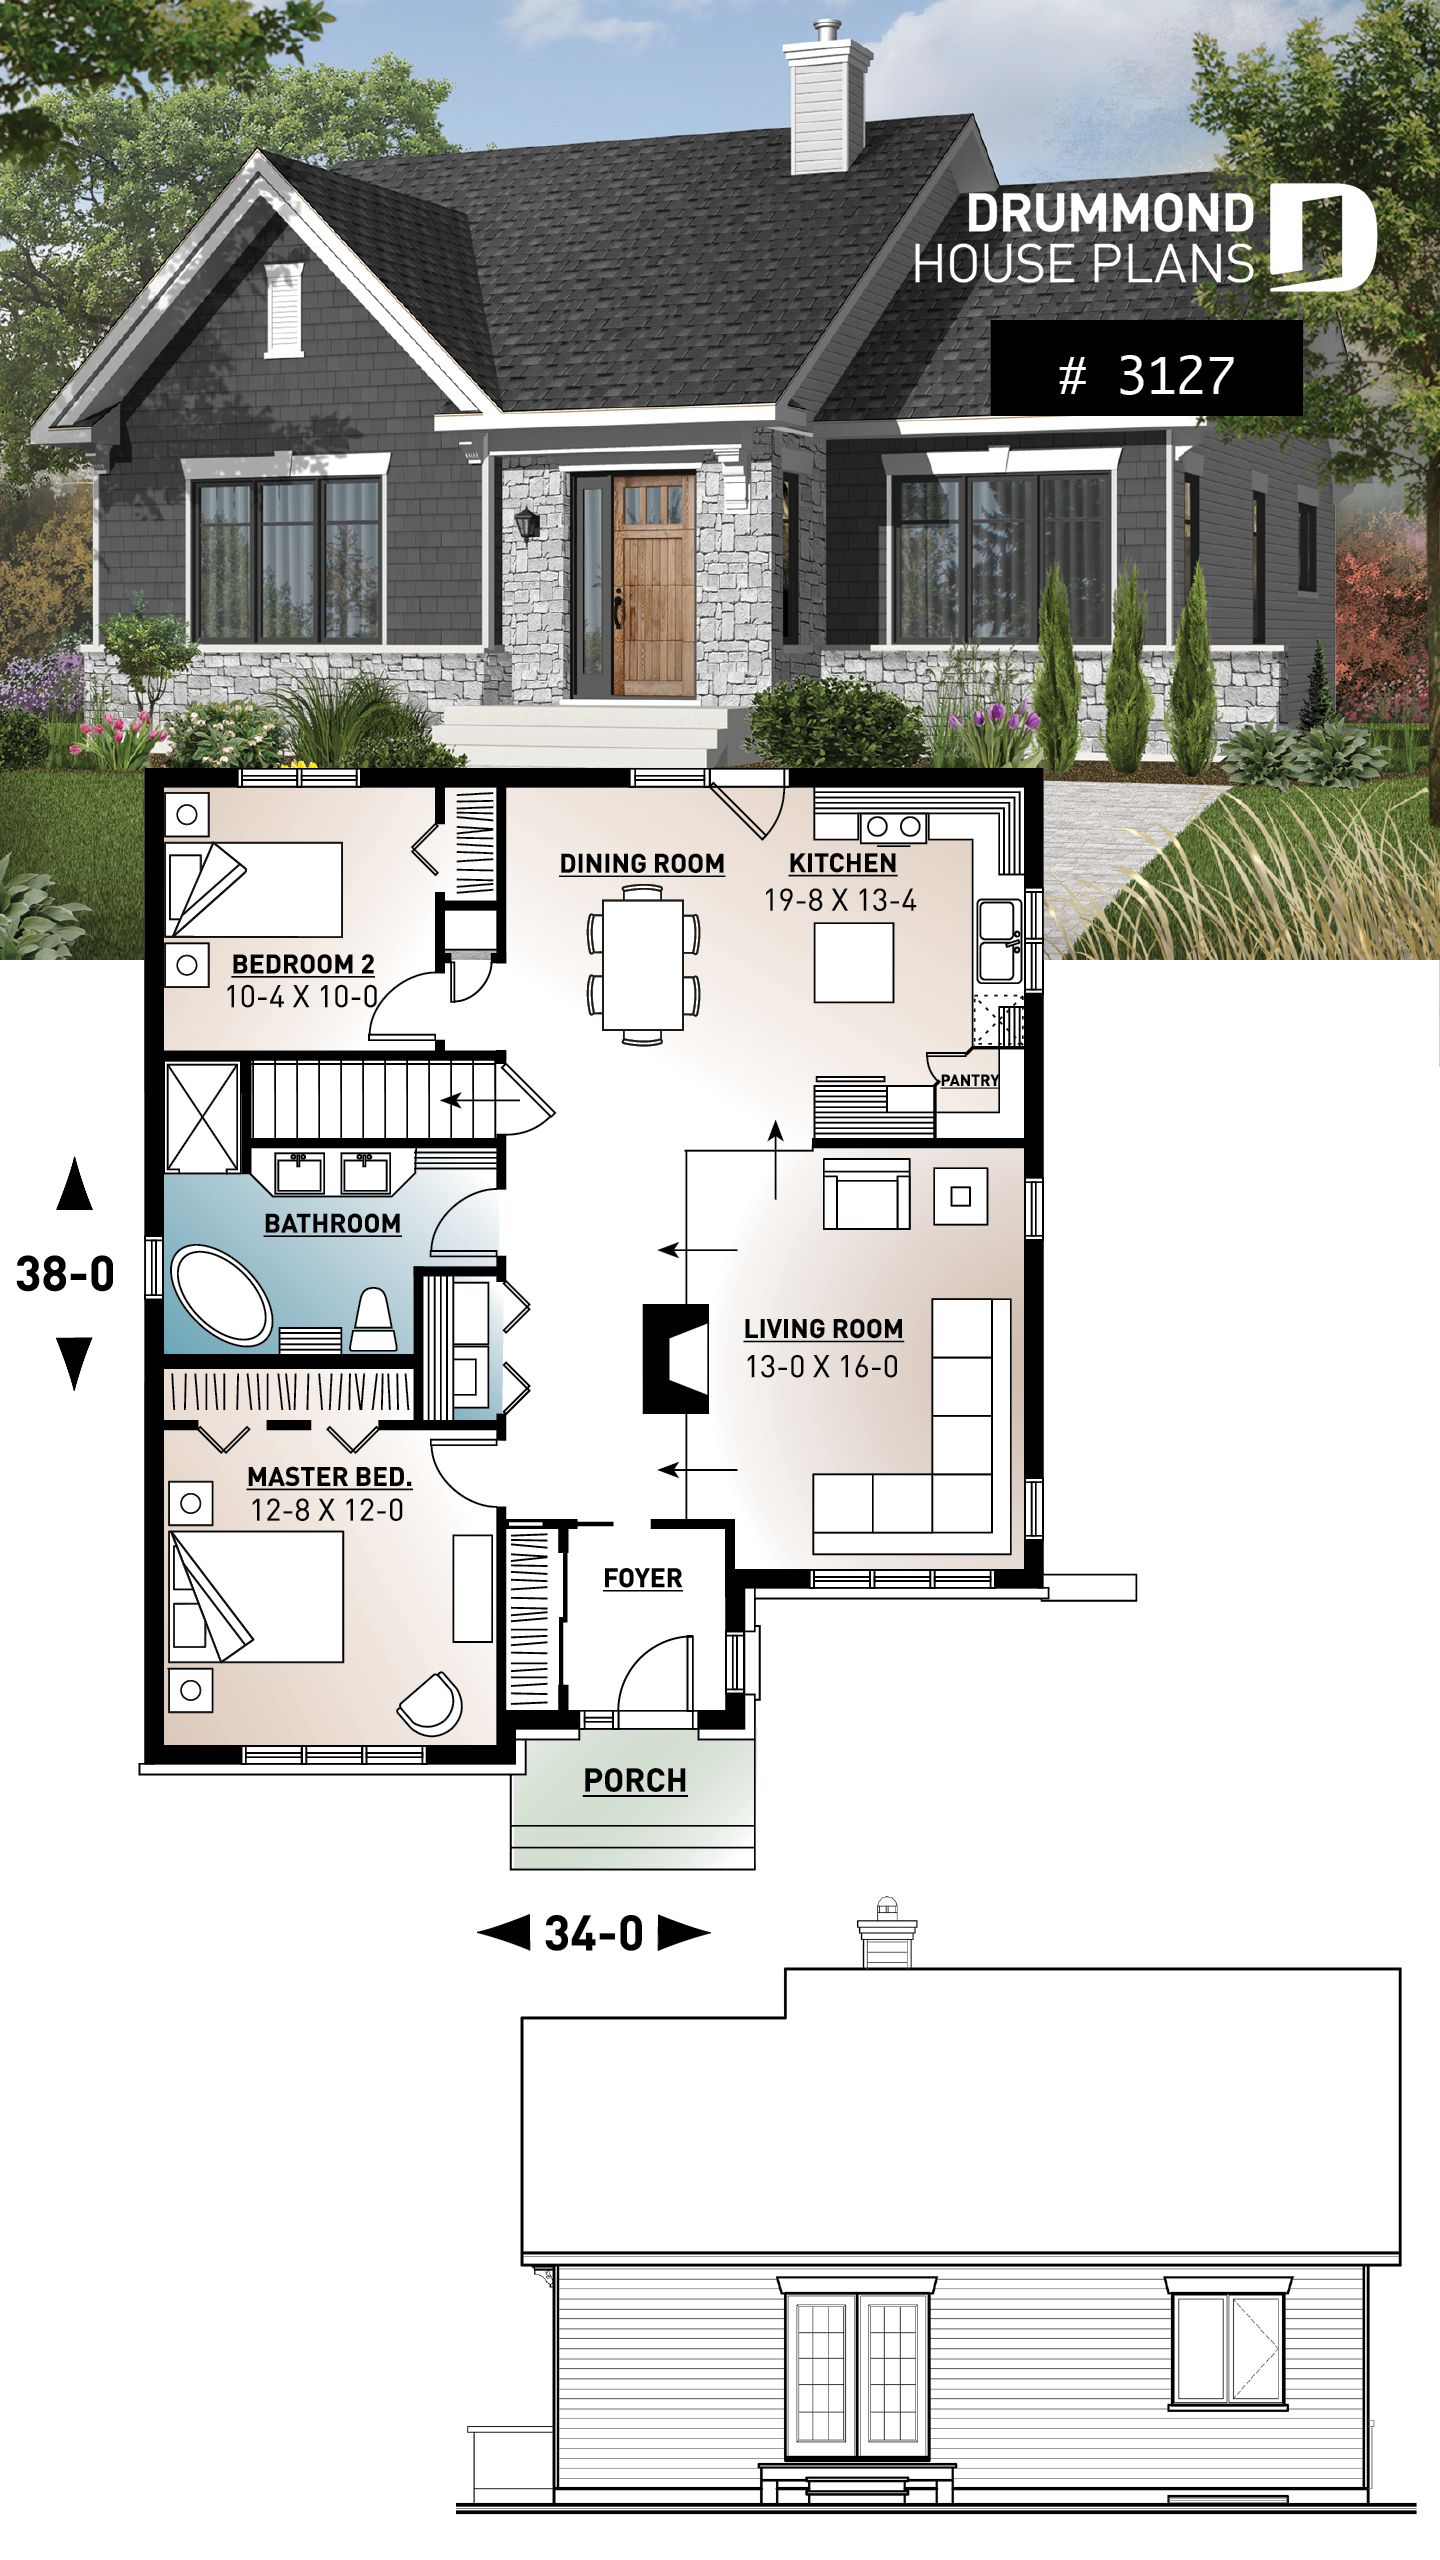 House Plan Rosewood No 3127 Ranch Style House Plans Sims House Plans Craftsman House Plans